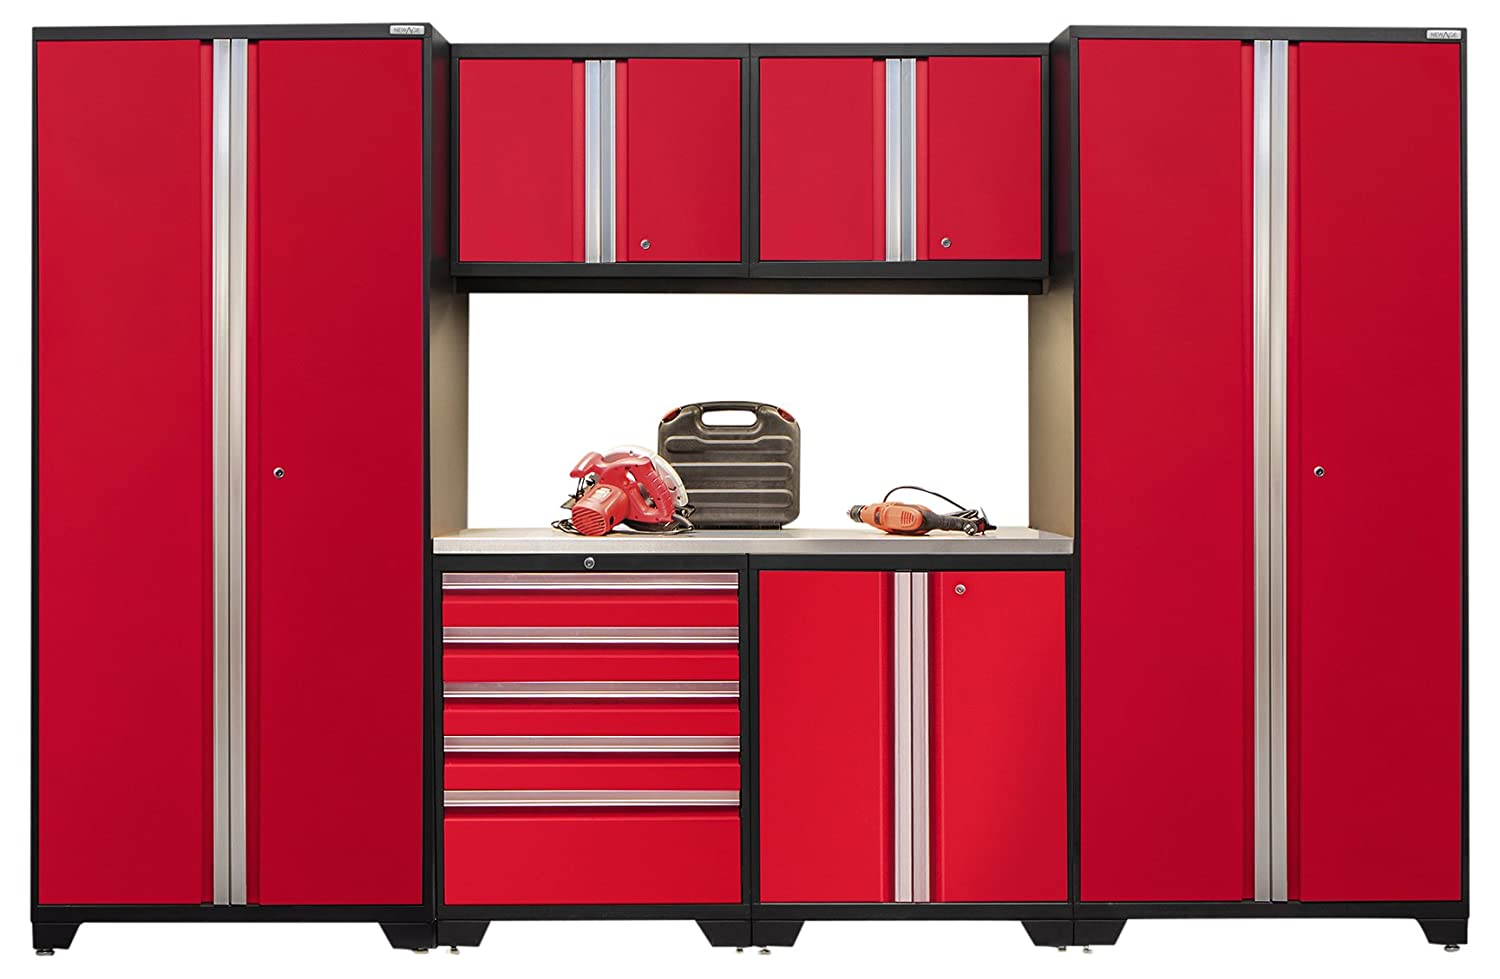 NewAge Products 52253 Pro 3.0 Series Stainless Steel Storage Set (7 Piece), Red